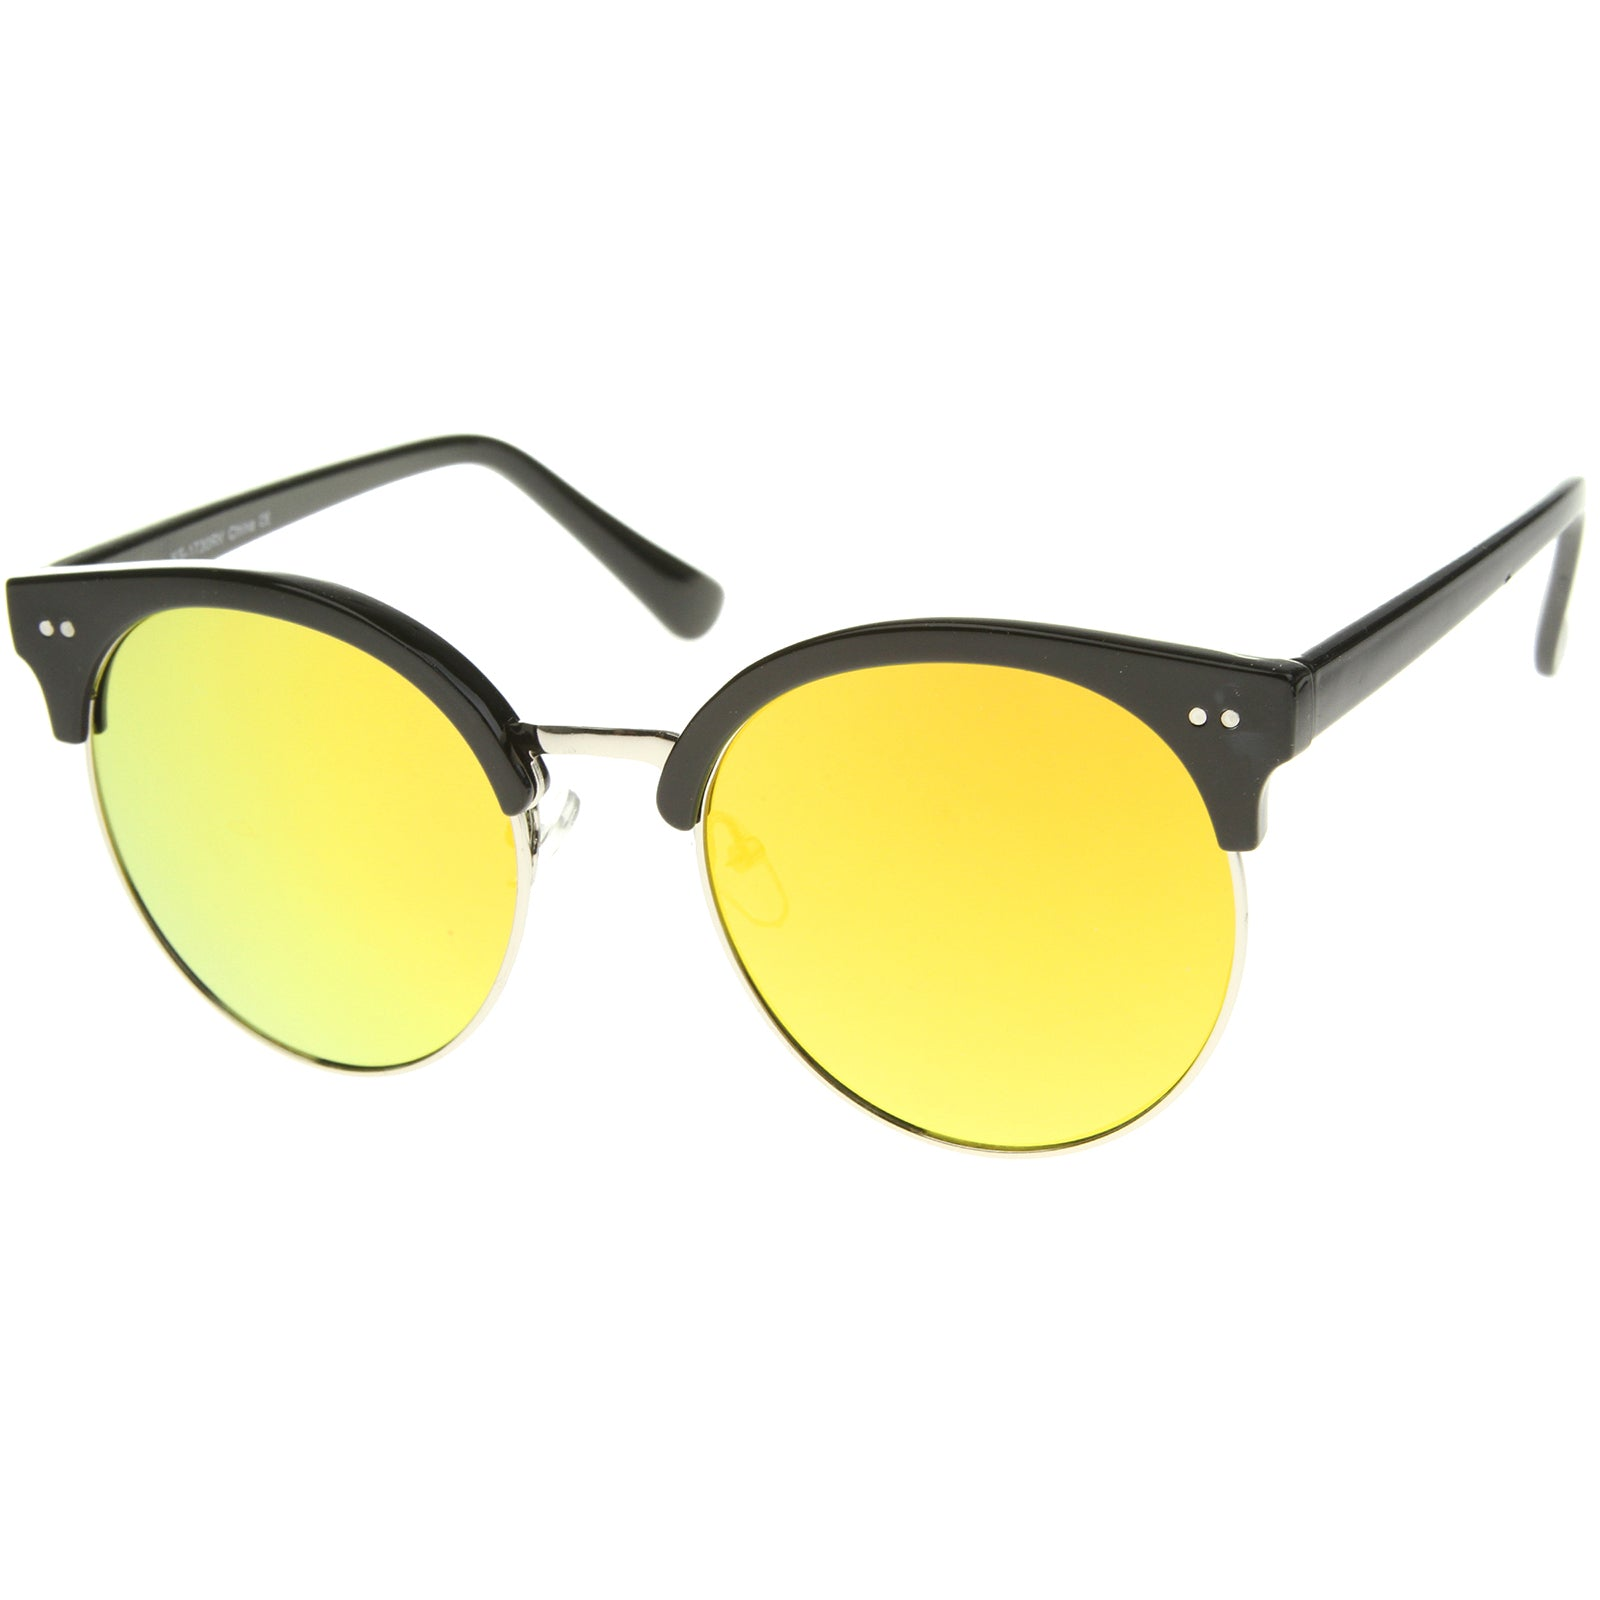 Womens Oversized Sunglasses With UV400 Protected Mirrored Lens - sunglass.la - 22